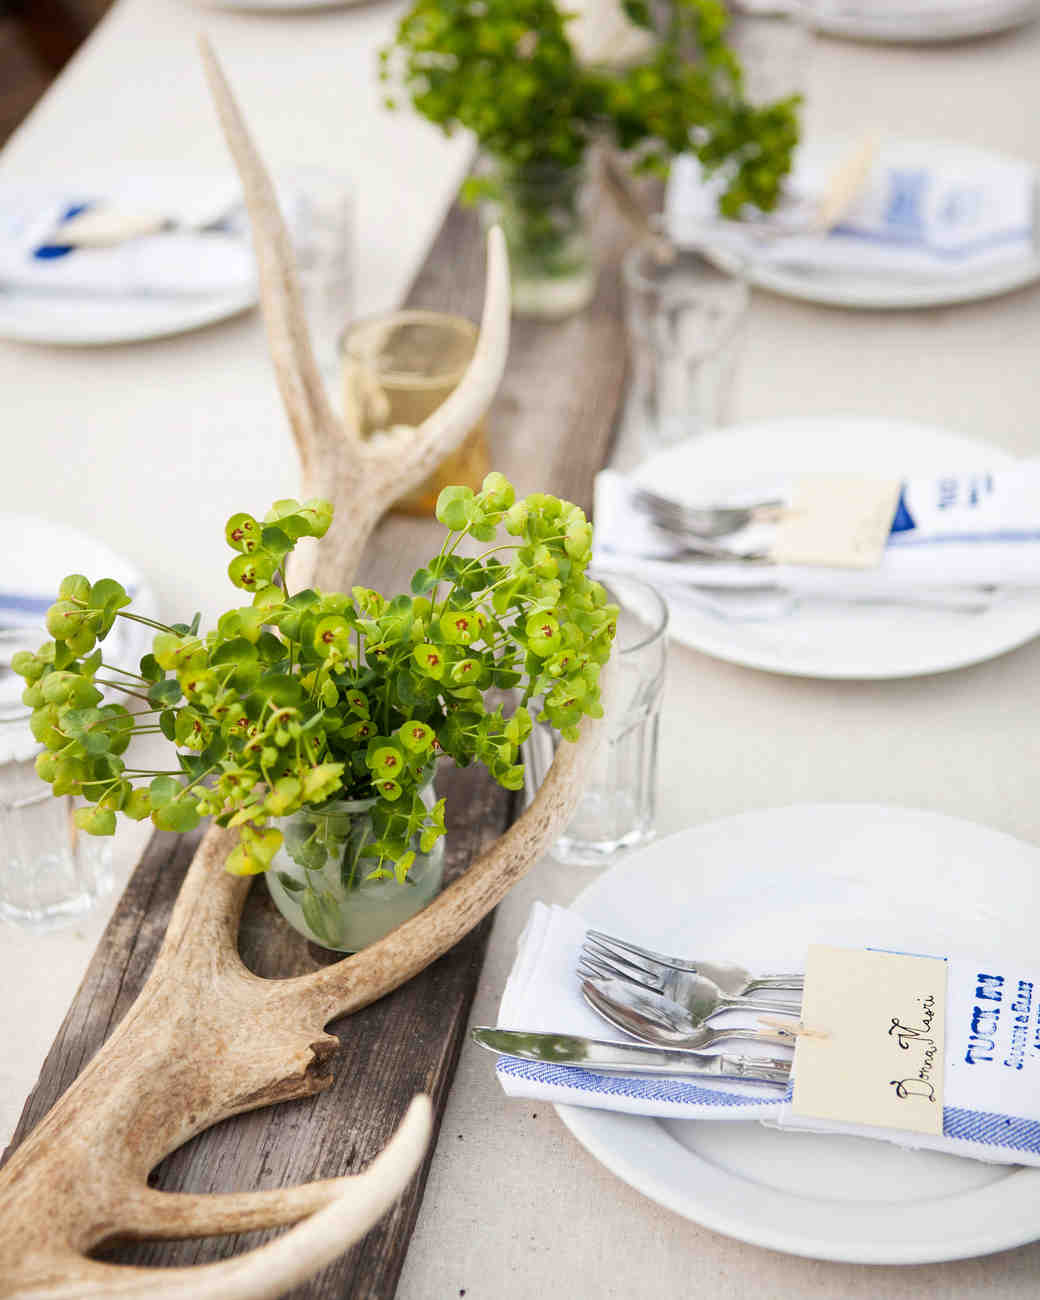 Merveilleux 14 Ideas That Prove Antlers Make Awesome Wedding Décor | Martha Stewart  Weddings